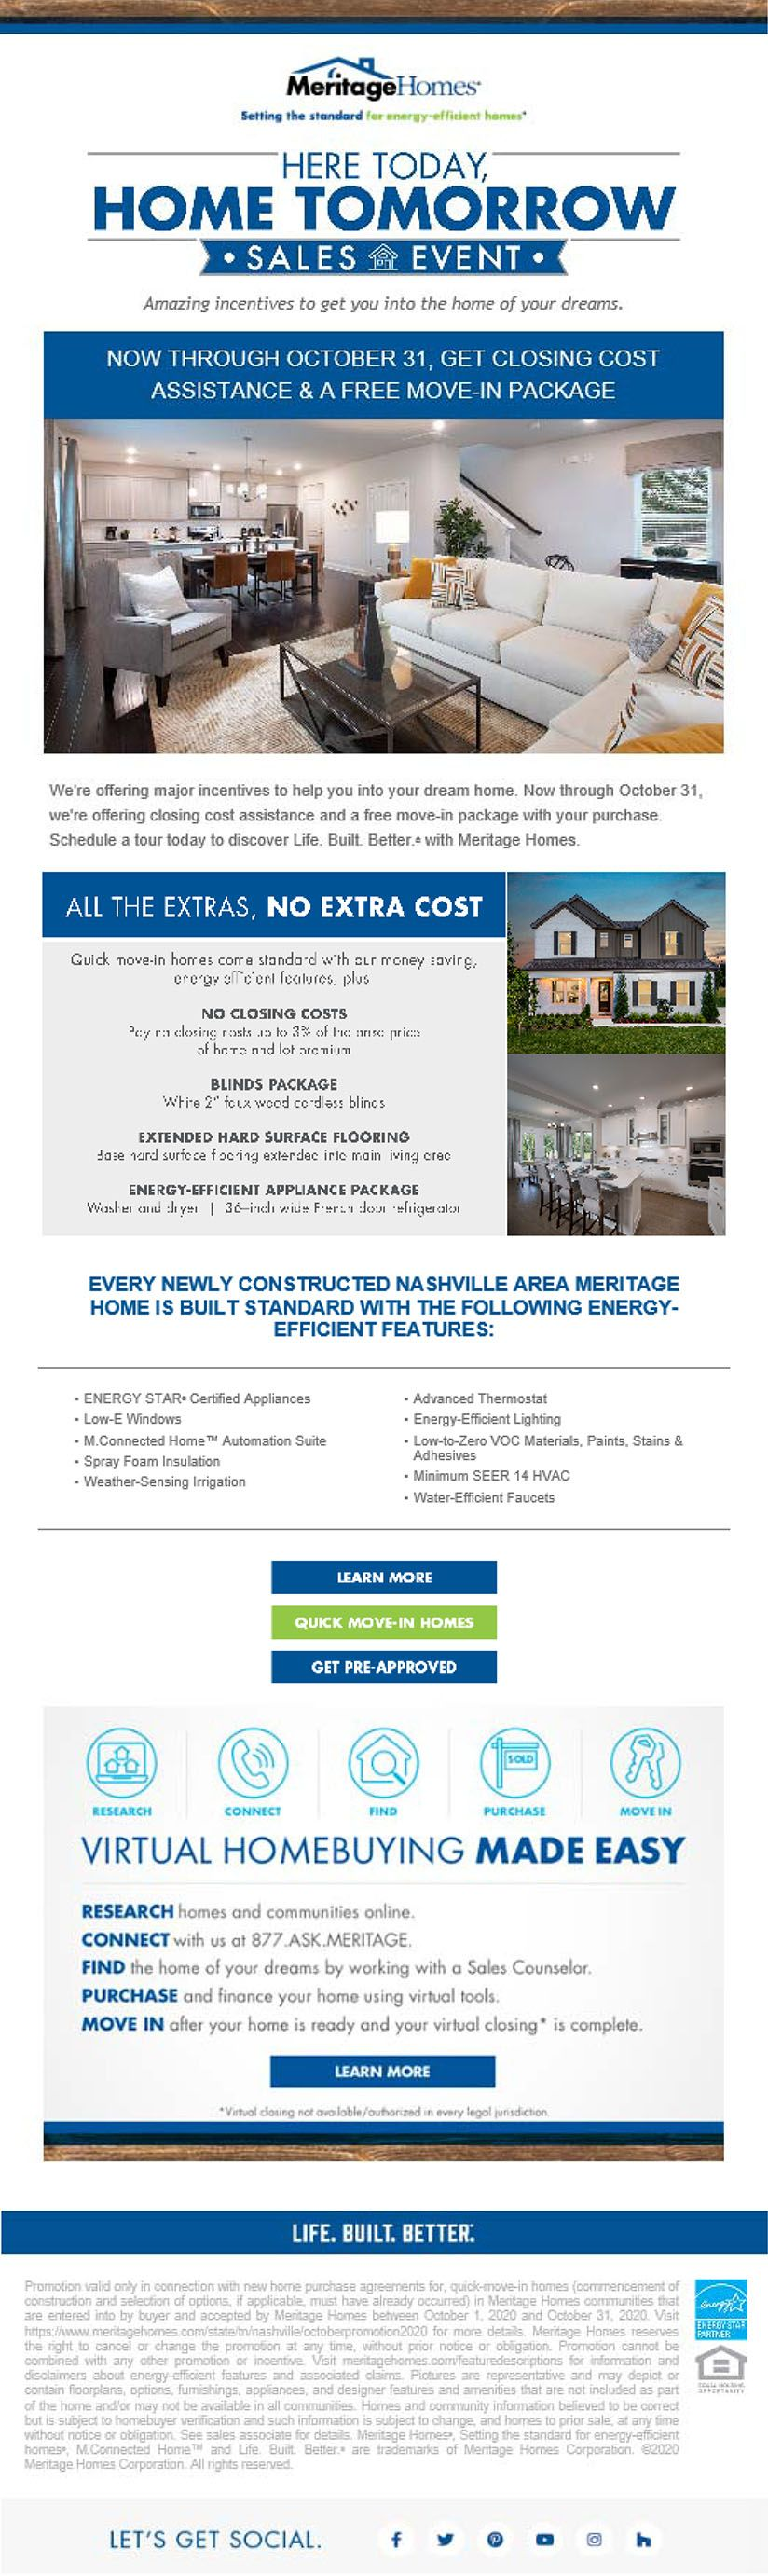 Fall In Love With These Deals At Meritage Homes In 2020 New Homes For Sale Home Buying New Homes